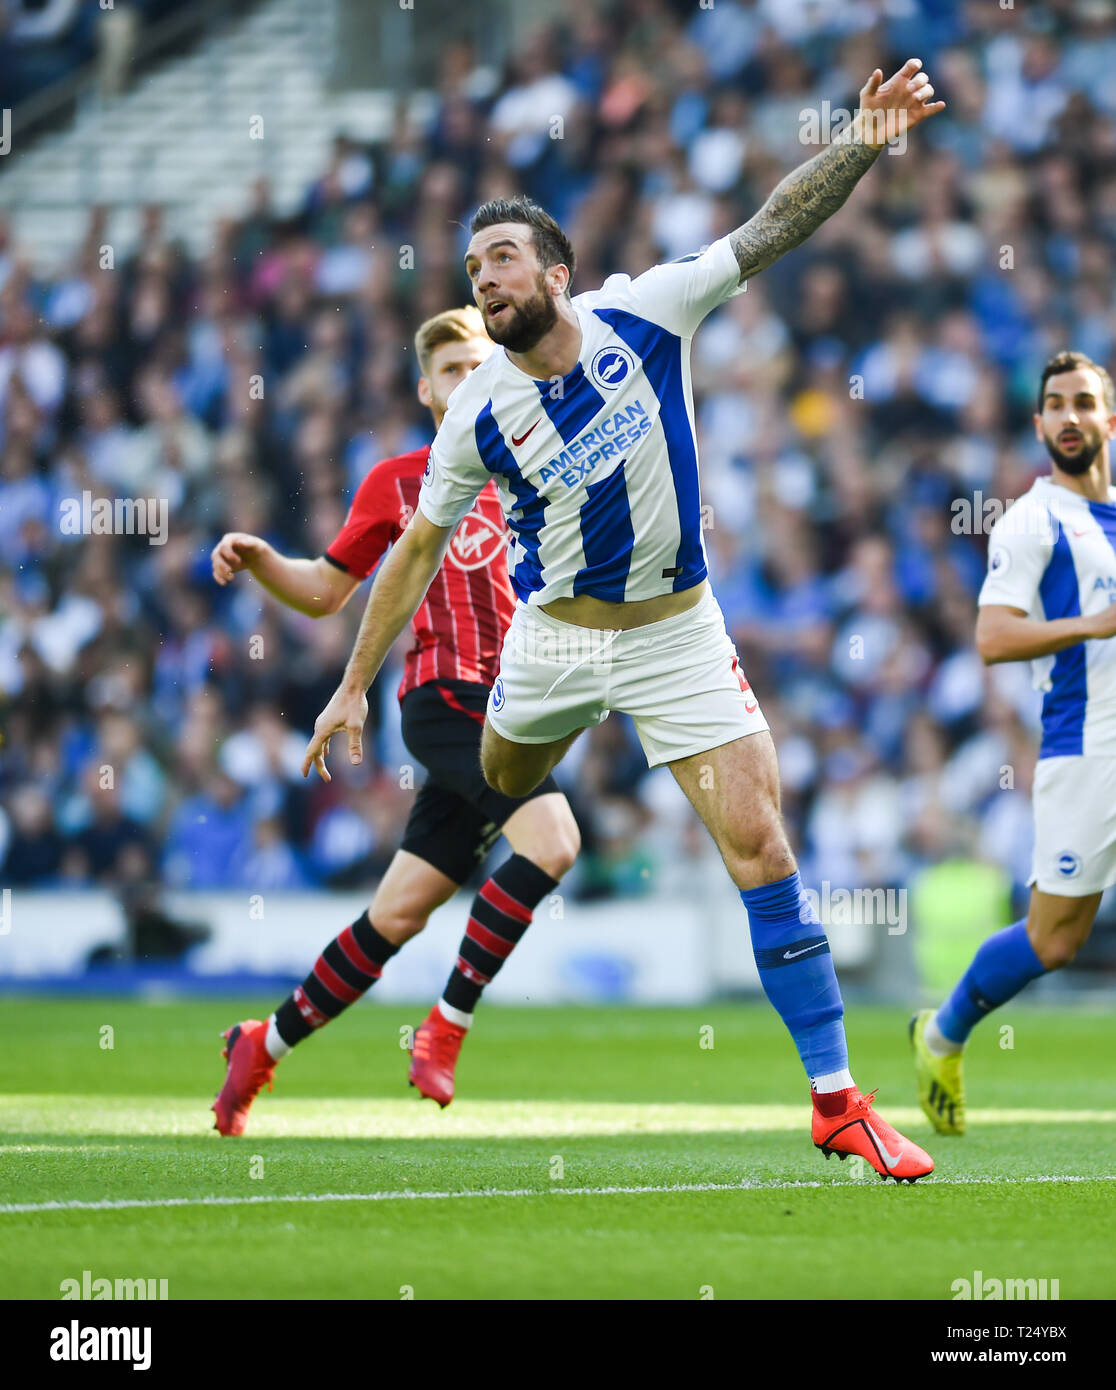 Shane Duffy of Brighton during the Premier League match between Brighton & Hove Albion and Southampton at The American Express Community Stadium . 30 March 2019 Editorial use only. No merchandising. For Football images FA and Premier League restrictions apply inc. no internet/mobile usage without FAPL license - for details contact Football Dataco Stock Photo